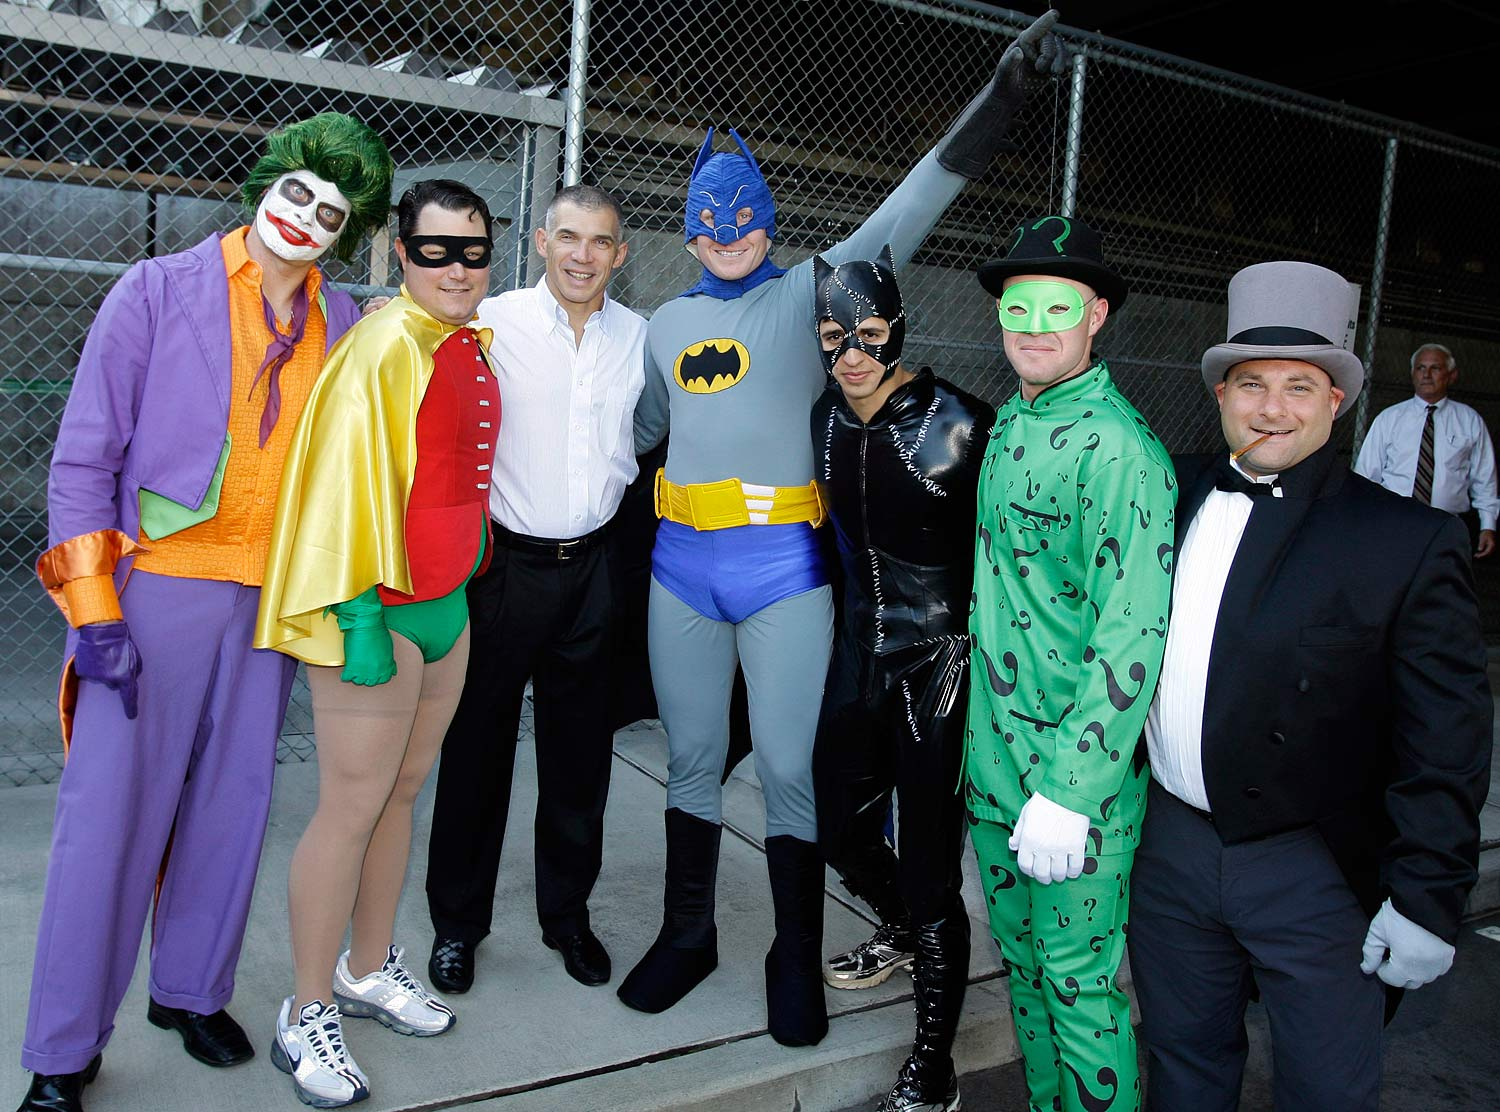 Radar gun operator Brett Weber as the Joker, video coordinator Anthony Flynn as Robin, pitcher Mark Melancon as Batman, manager Joe Girardi, shortstop Ramiro Pena as Catwoman, pitcher Michael Dunn as the Riddler, and massage therapist Lew Potter as the Penguin.